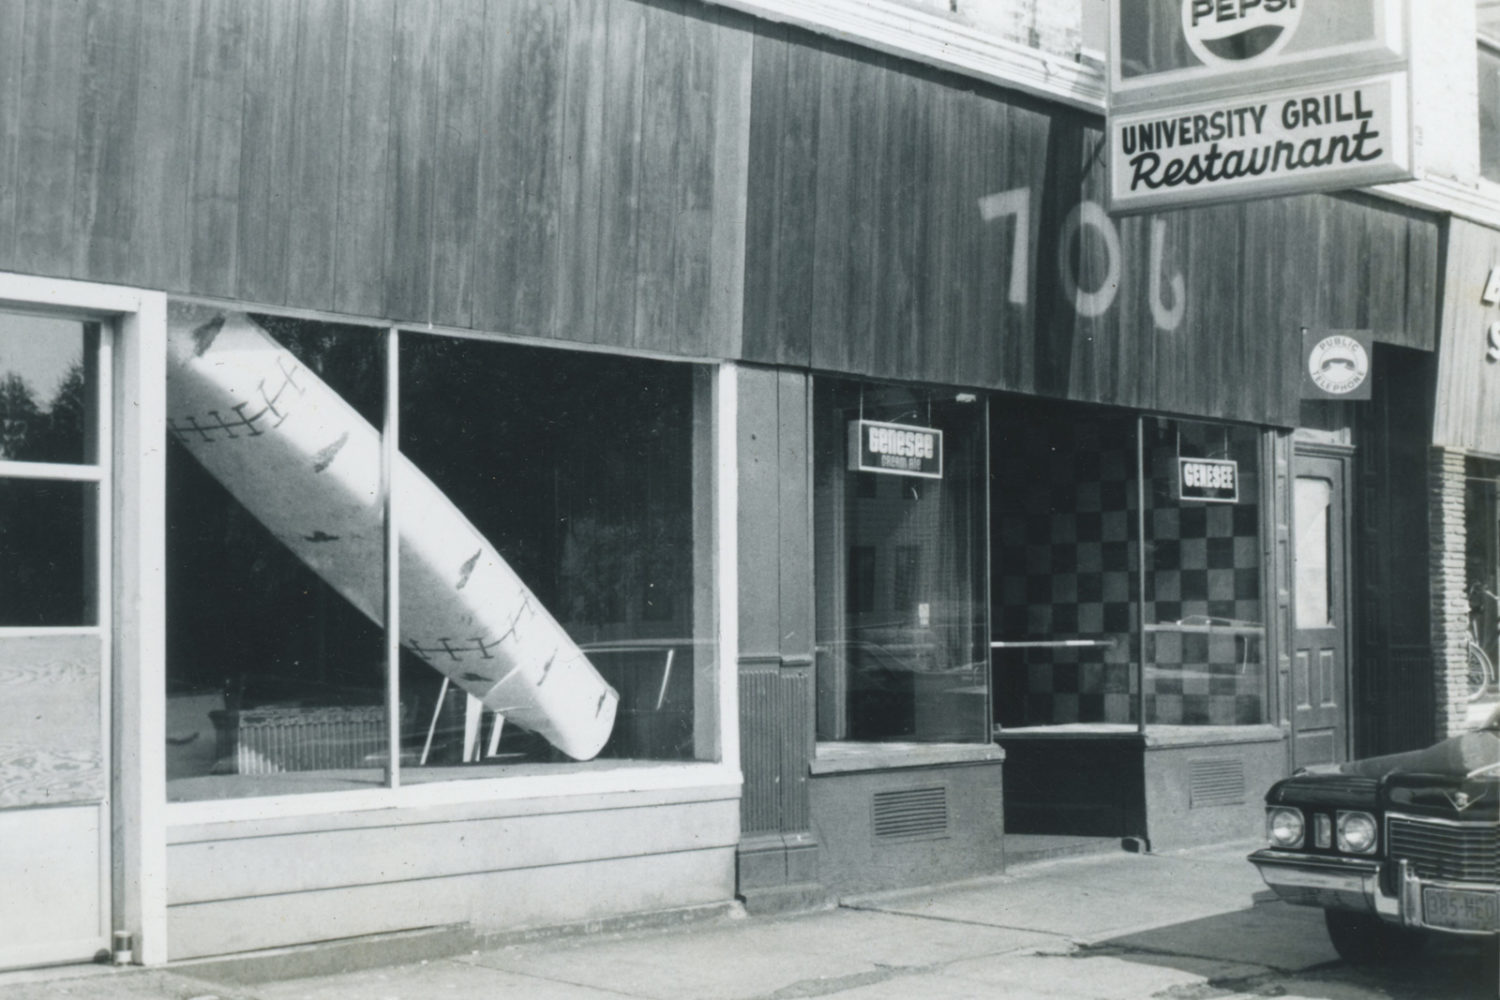 University Grill, next door to Towner's on University Avenue in Rochester, New York - photo by Paul Dodd 1976